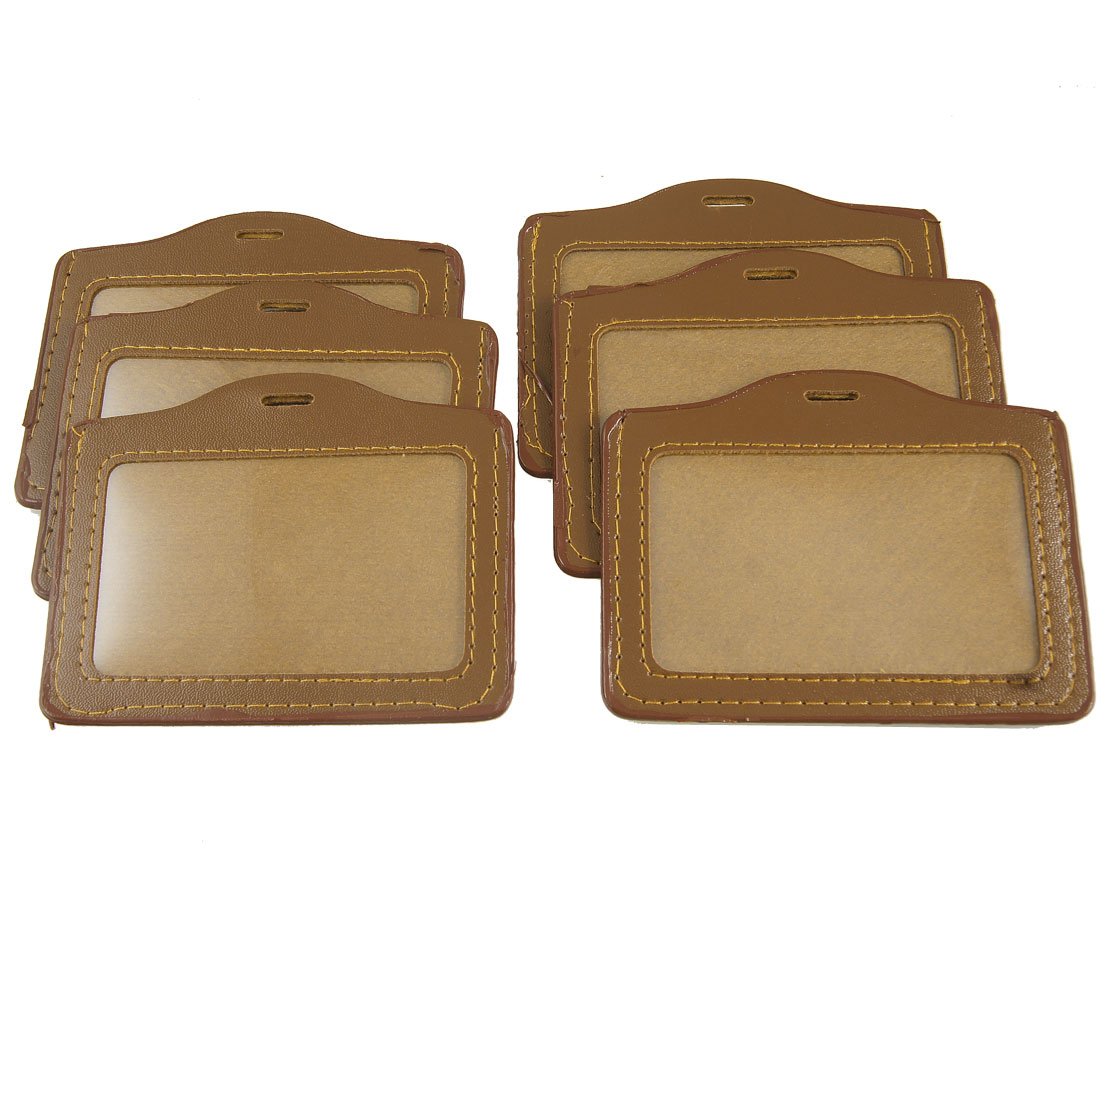 6 Pcs Brown Clear Faux Leather Plastic ID Name Work Card Holders